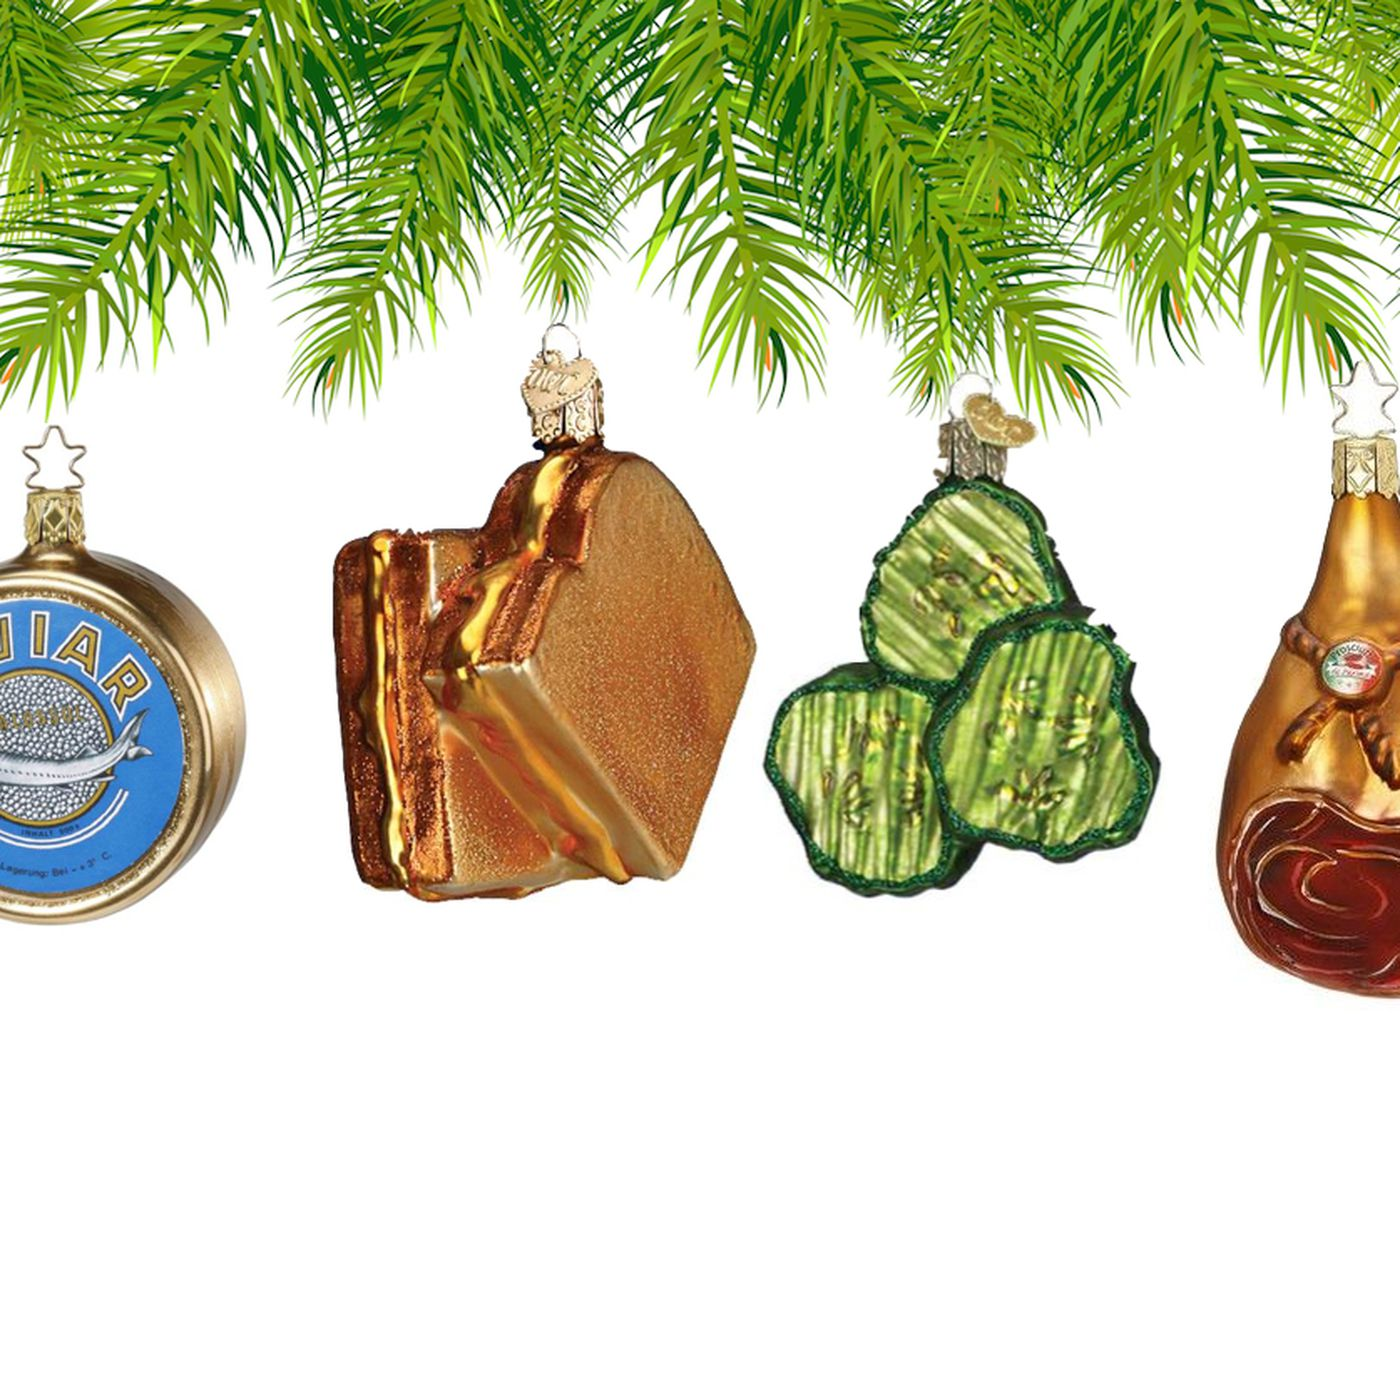 Food Themed Christmas Ornaments Have Zero Calories And Oodles Of Yuletide Spirit Eater